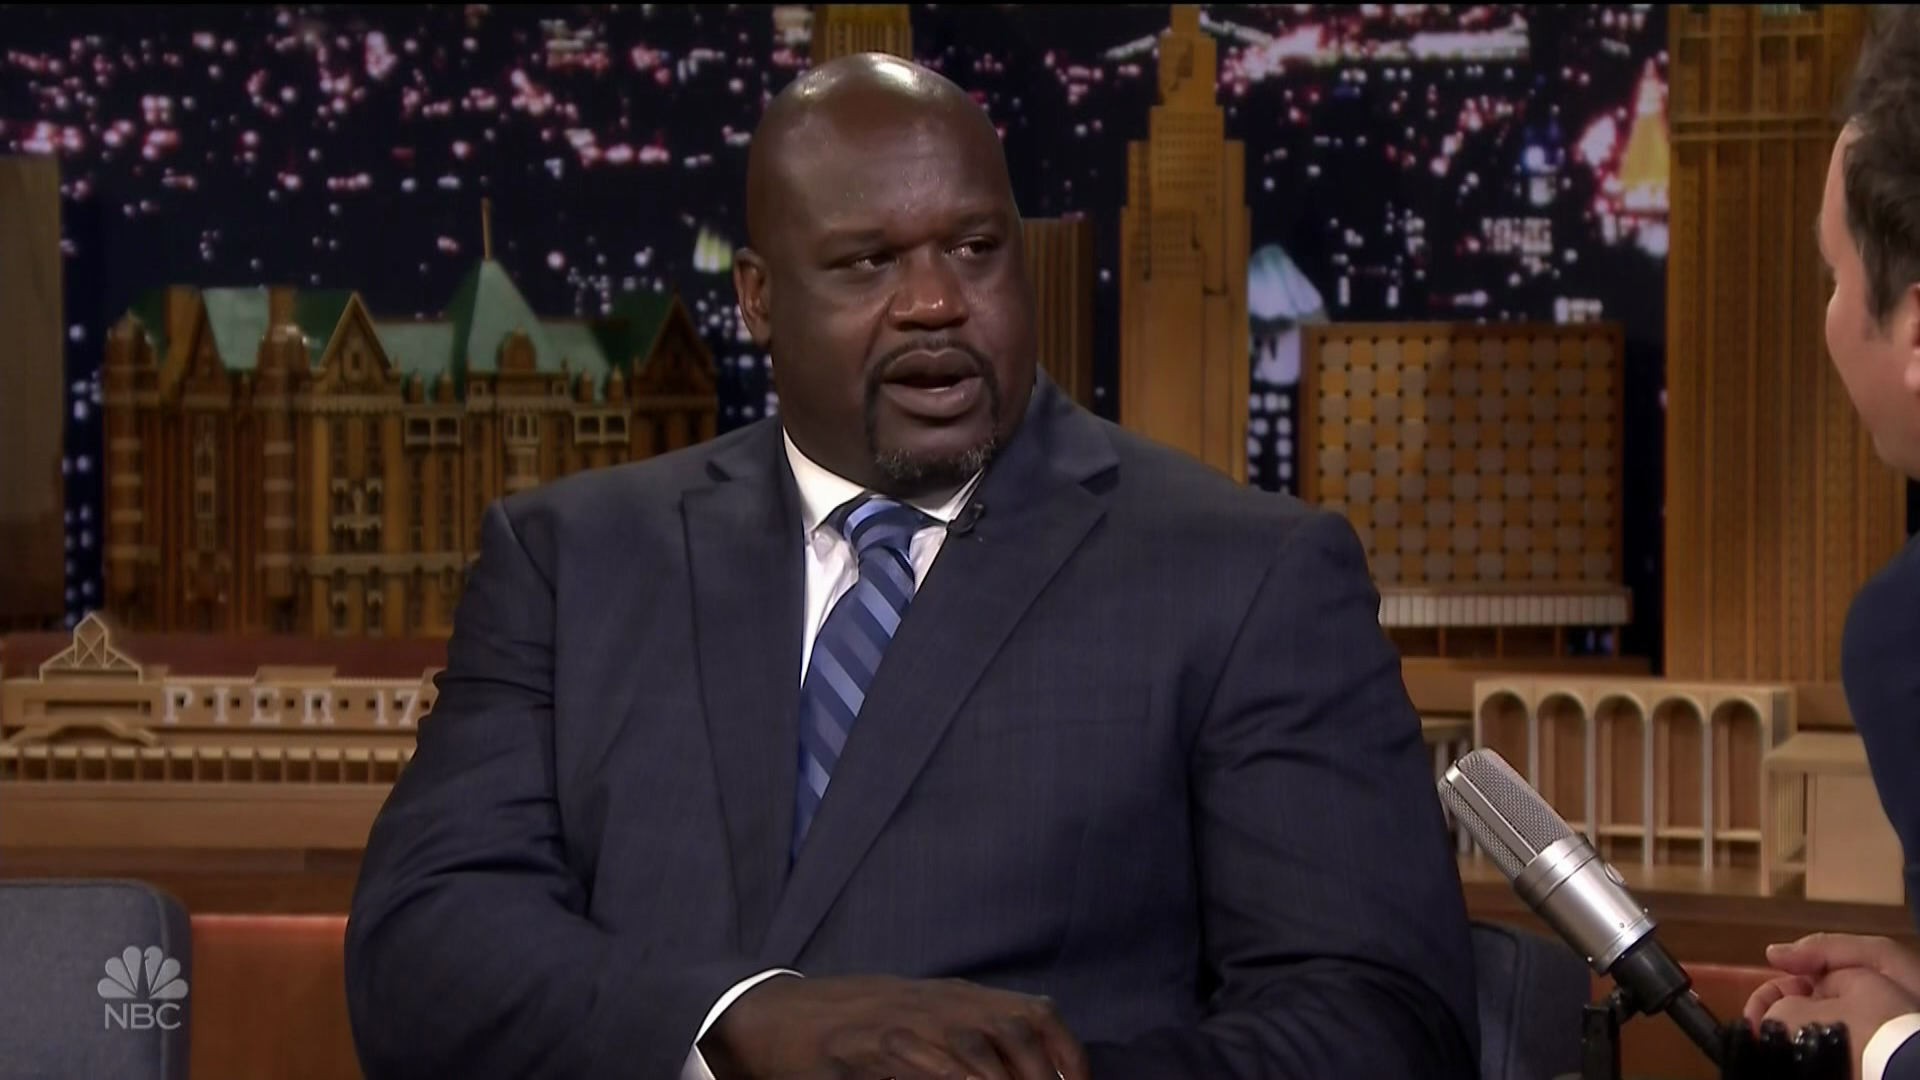 Shaquille O'Neal during an appearance on NBC's 'The Tonight Show Starring Jimmy Fallon.'